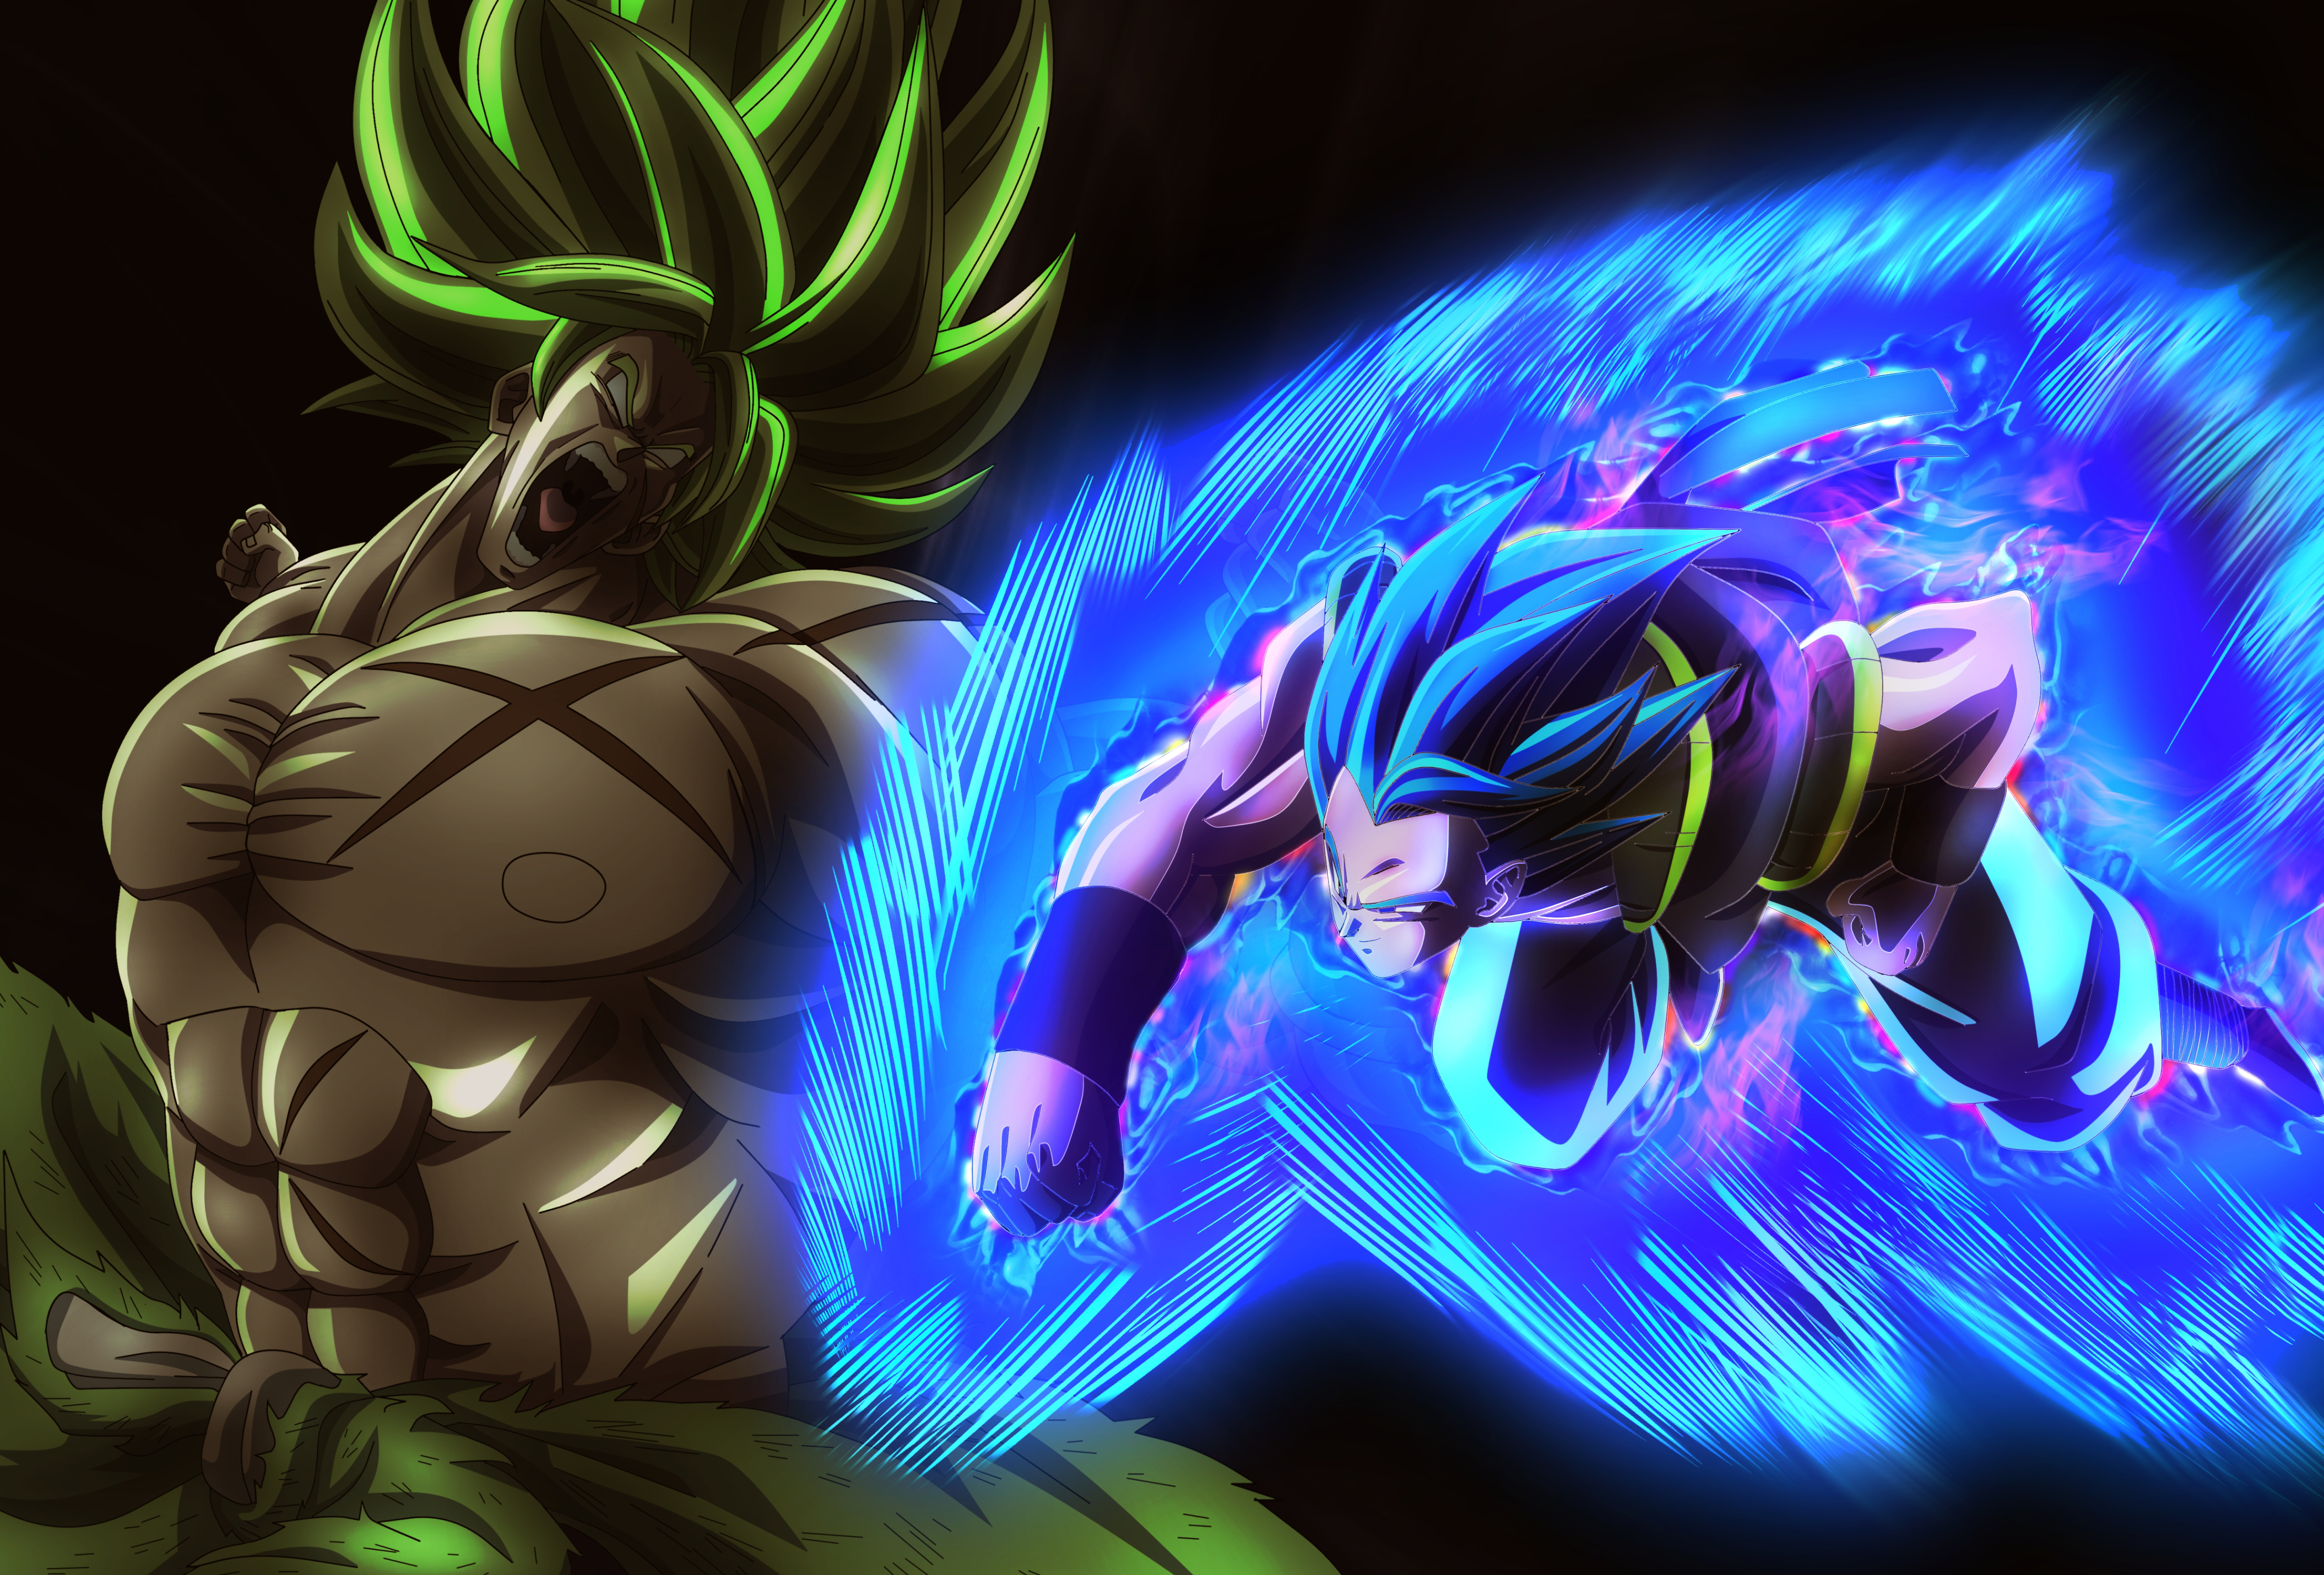 Gogeta Vs Broly 4k Ultra Hd Wallpaper Background Image 4219x2859 Id 1004710 Wallpaper Abyss